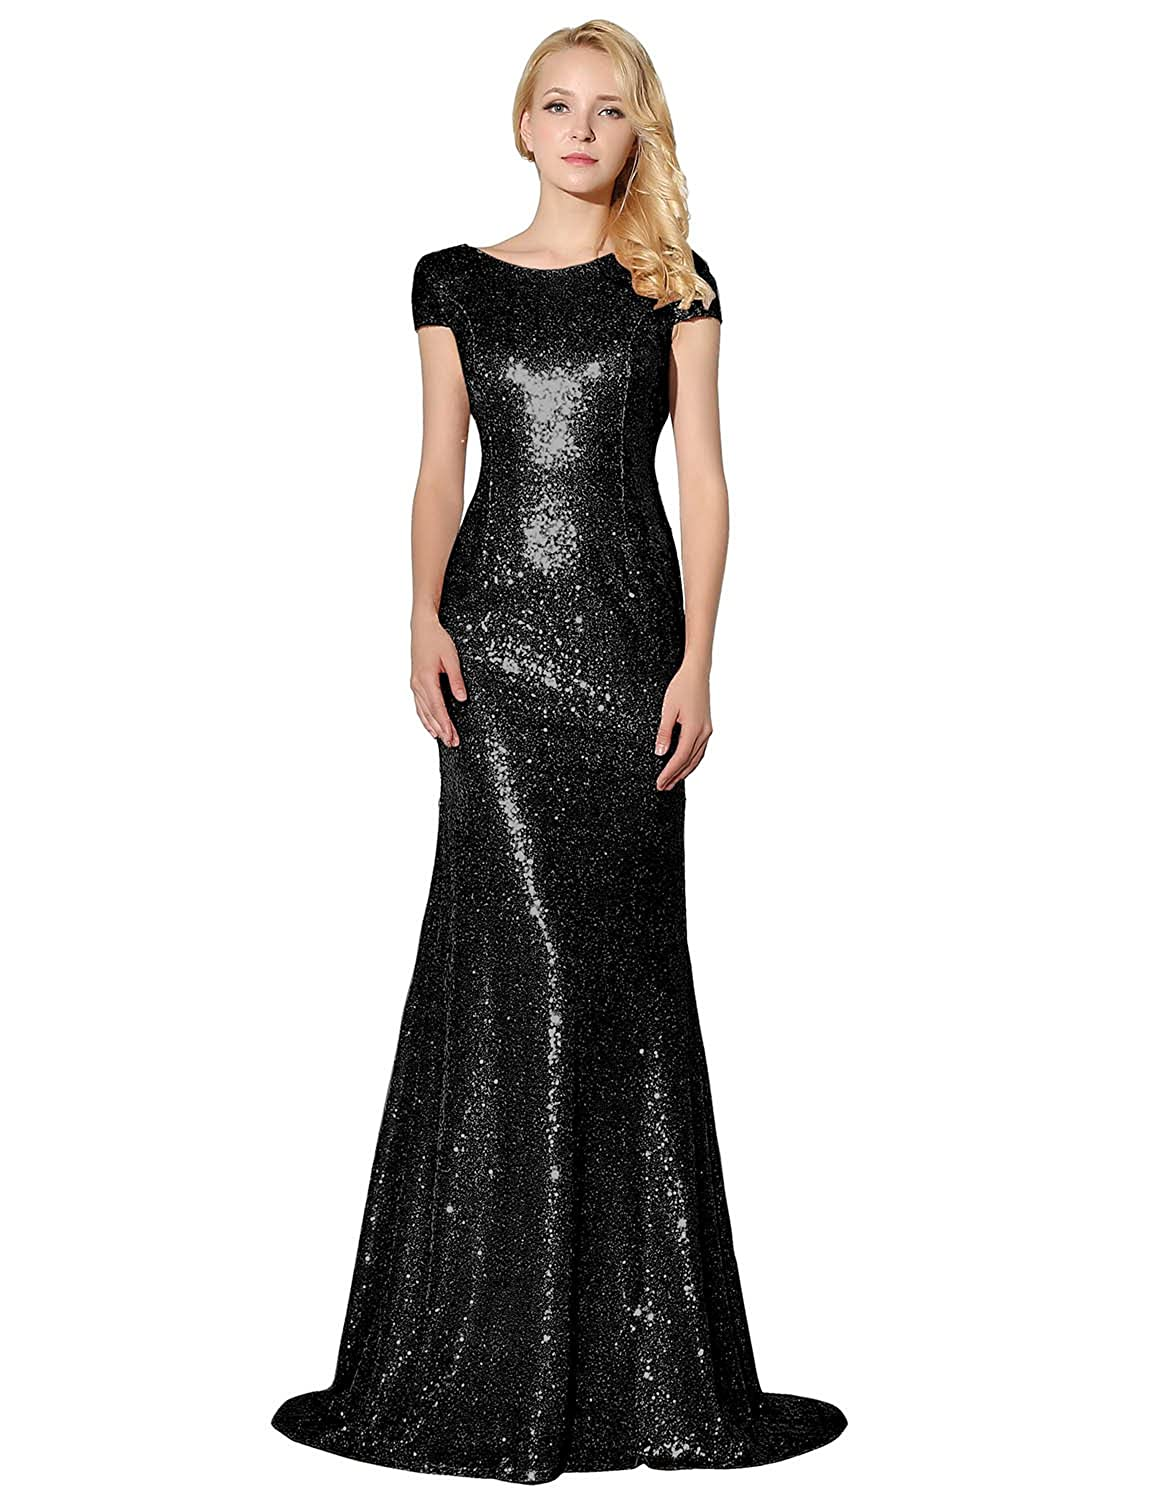 Clearbridal Women's Formal Mermaid Sequine Prom Evening Dress Long Sweep Train Bridesmaid Gown SD197, Black, UK 18